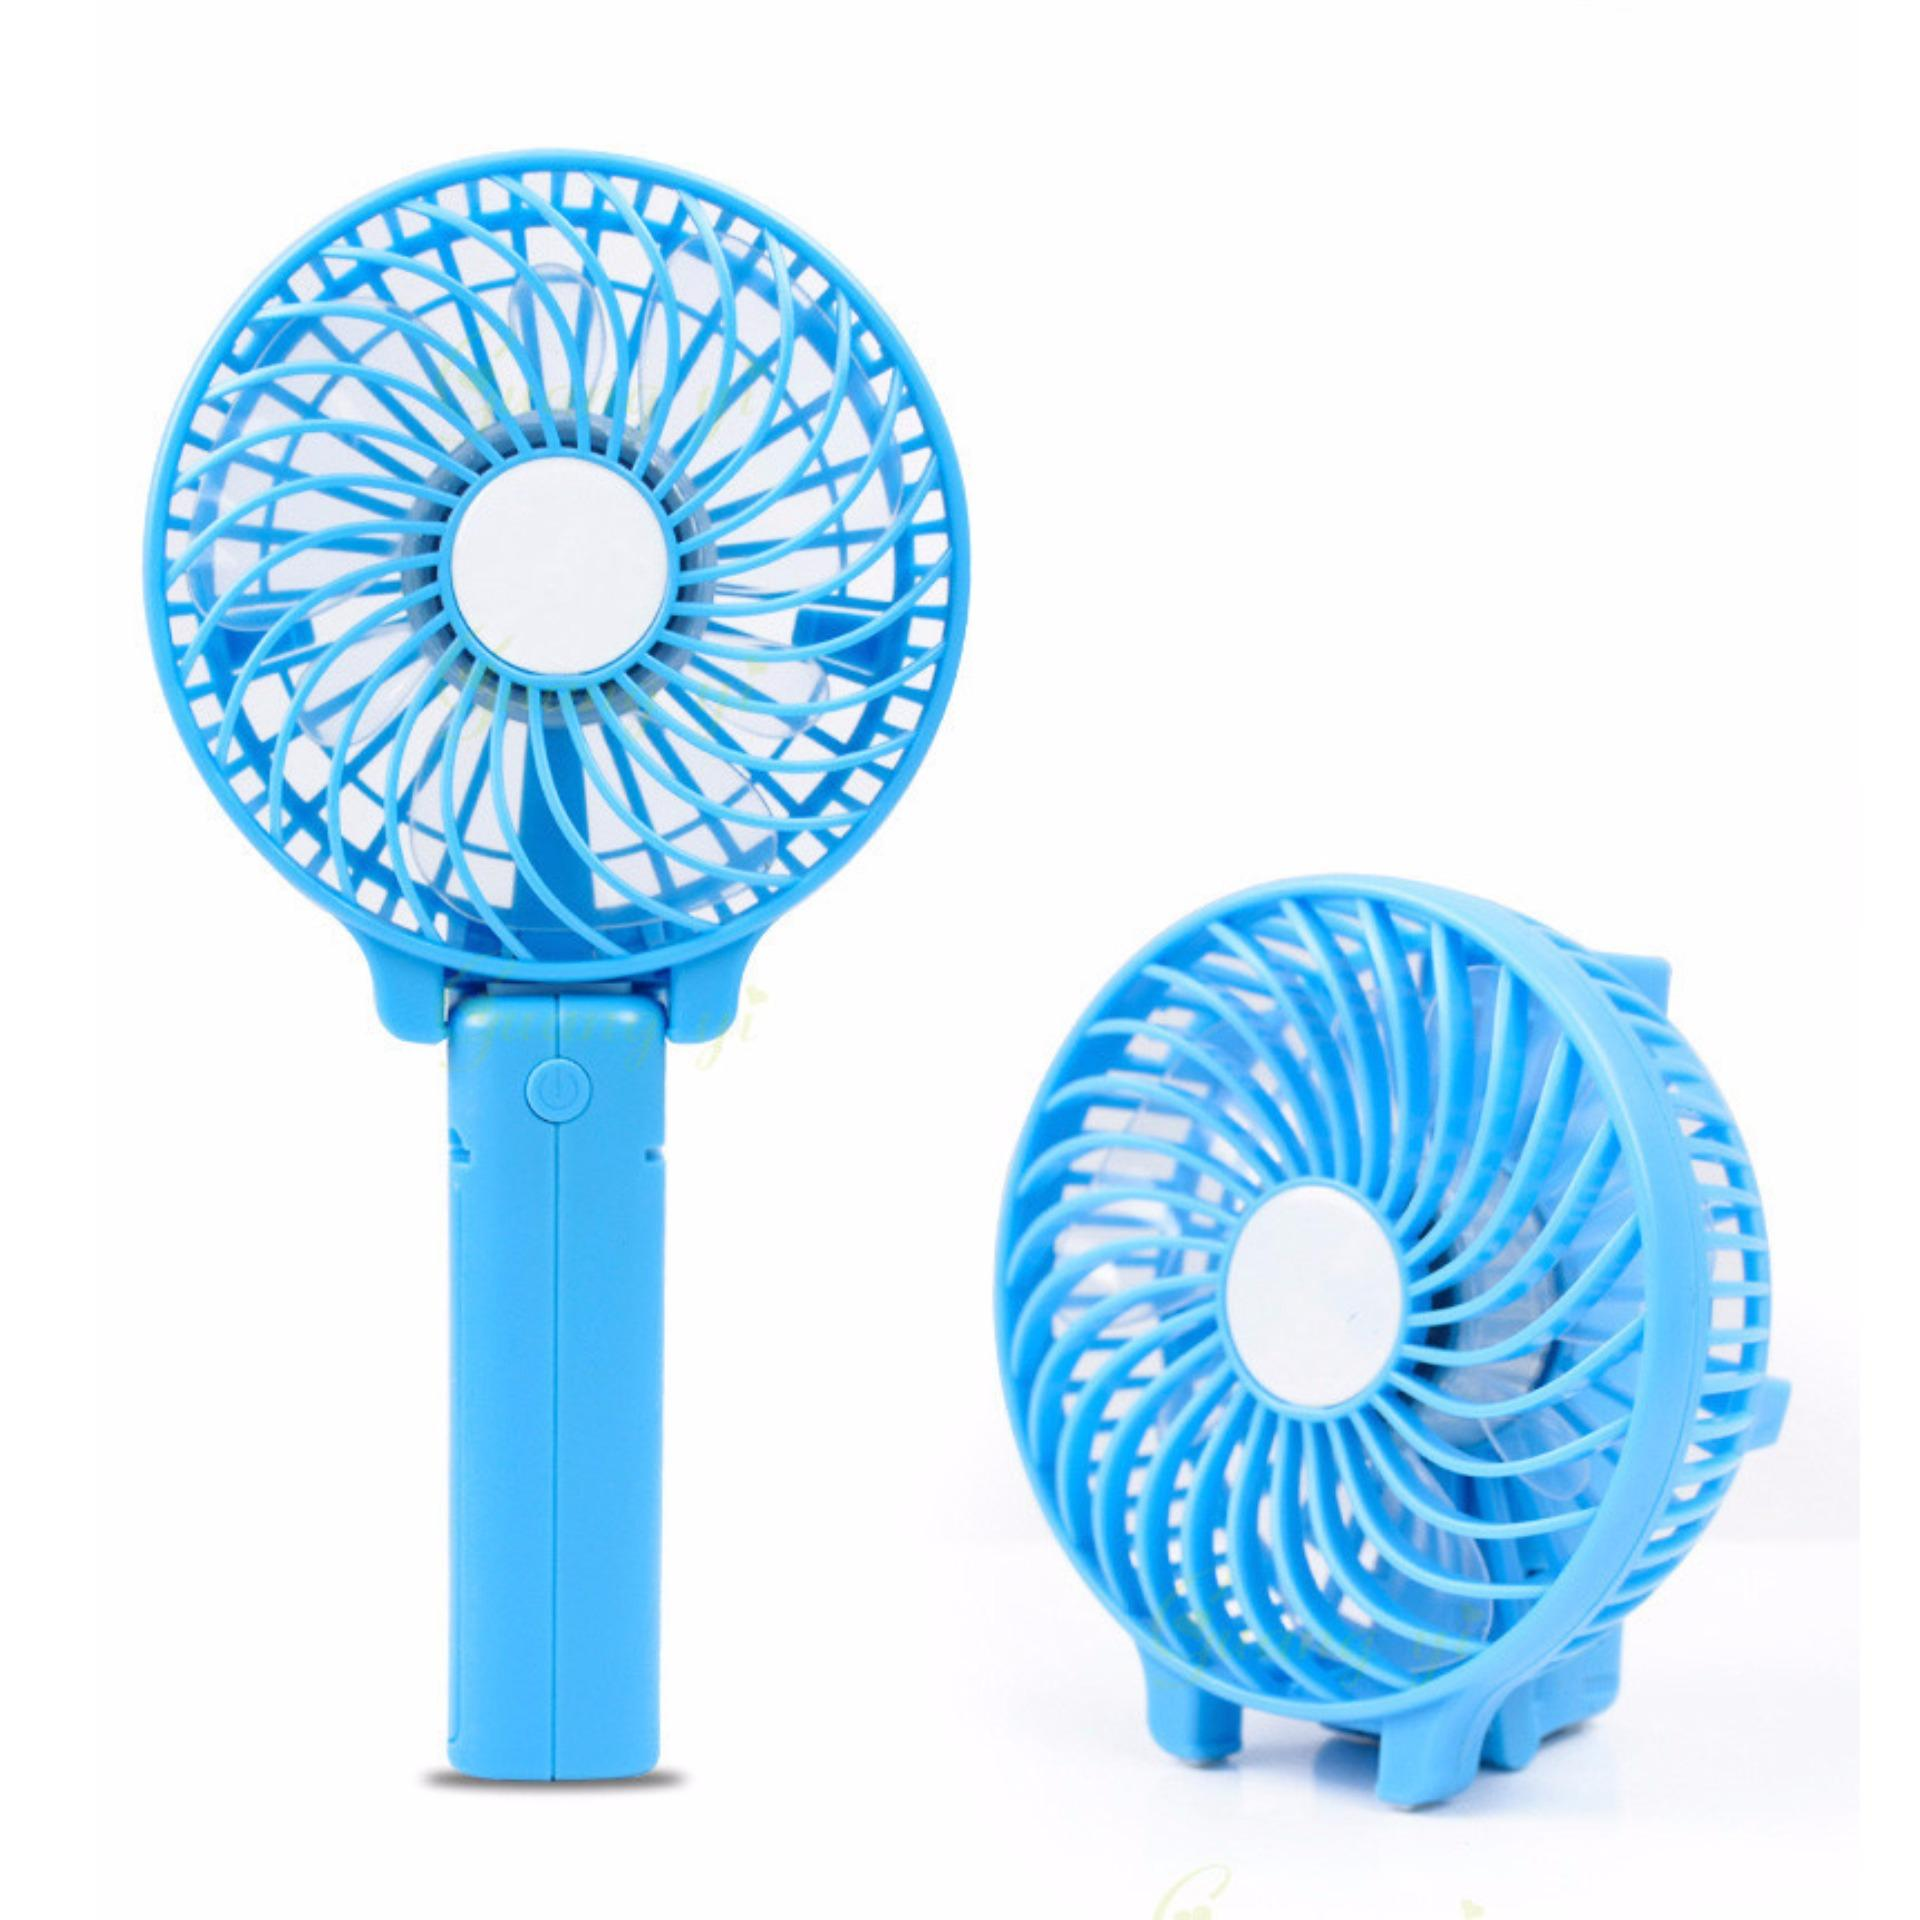 ... Kipas Bee Handy Mini Fan Lipat Portable Rechargeable Quality Brand - Biru ...